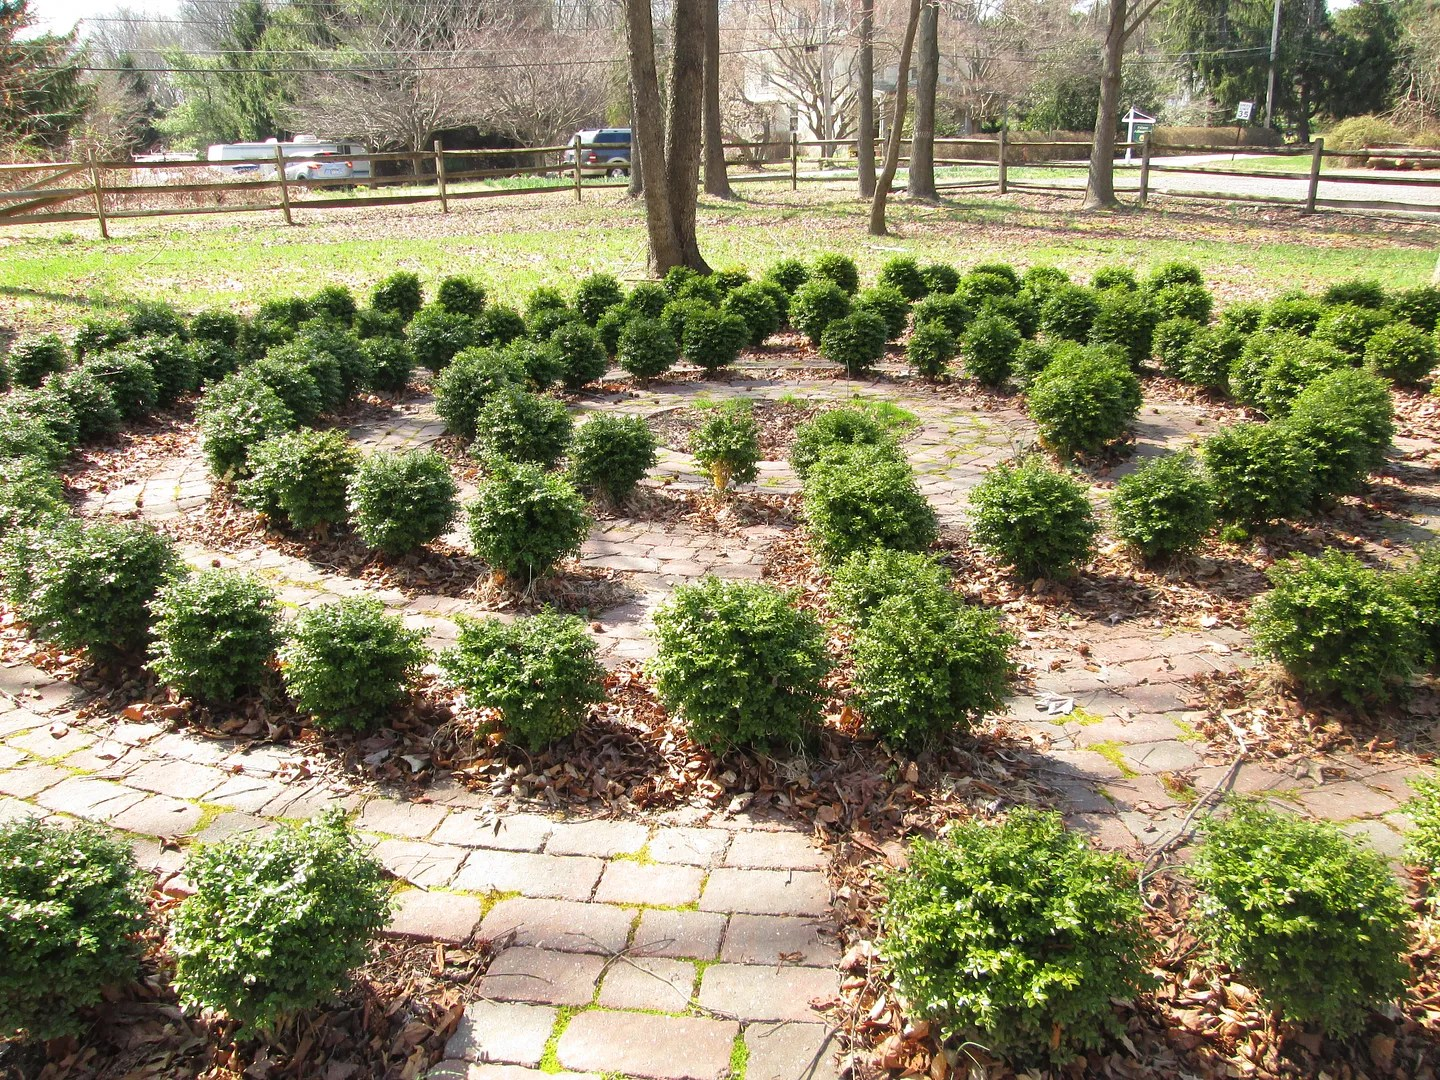 labyrinth with stones and small shrubs